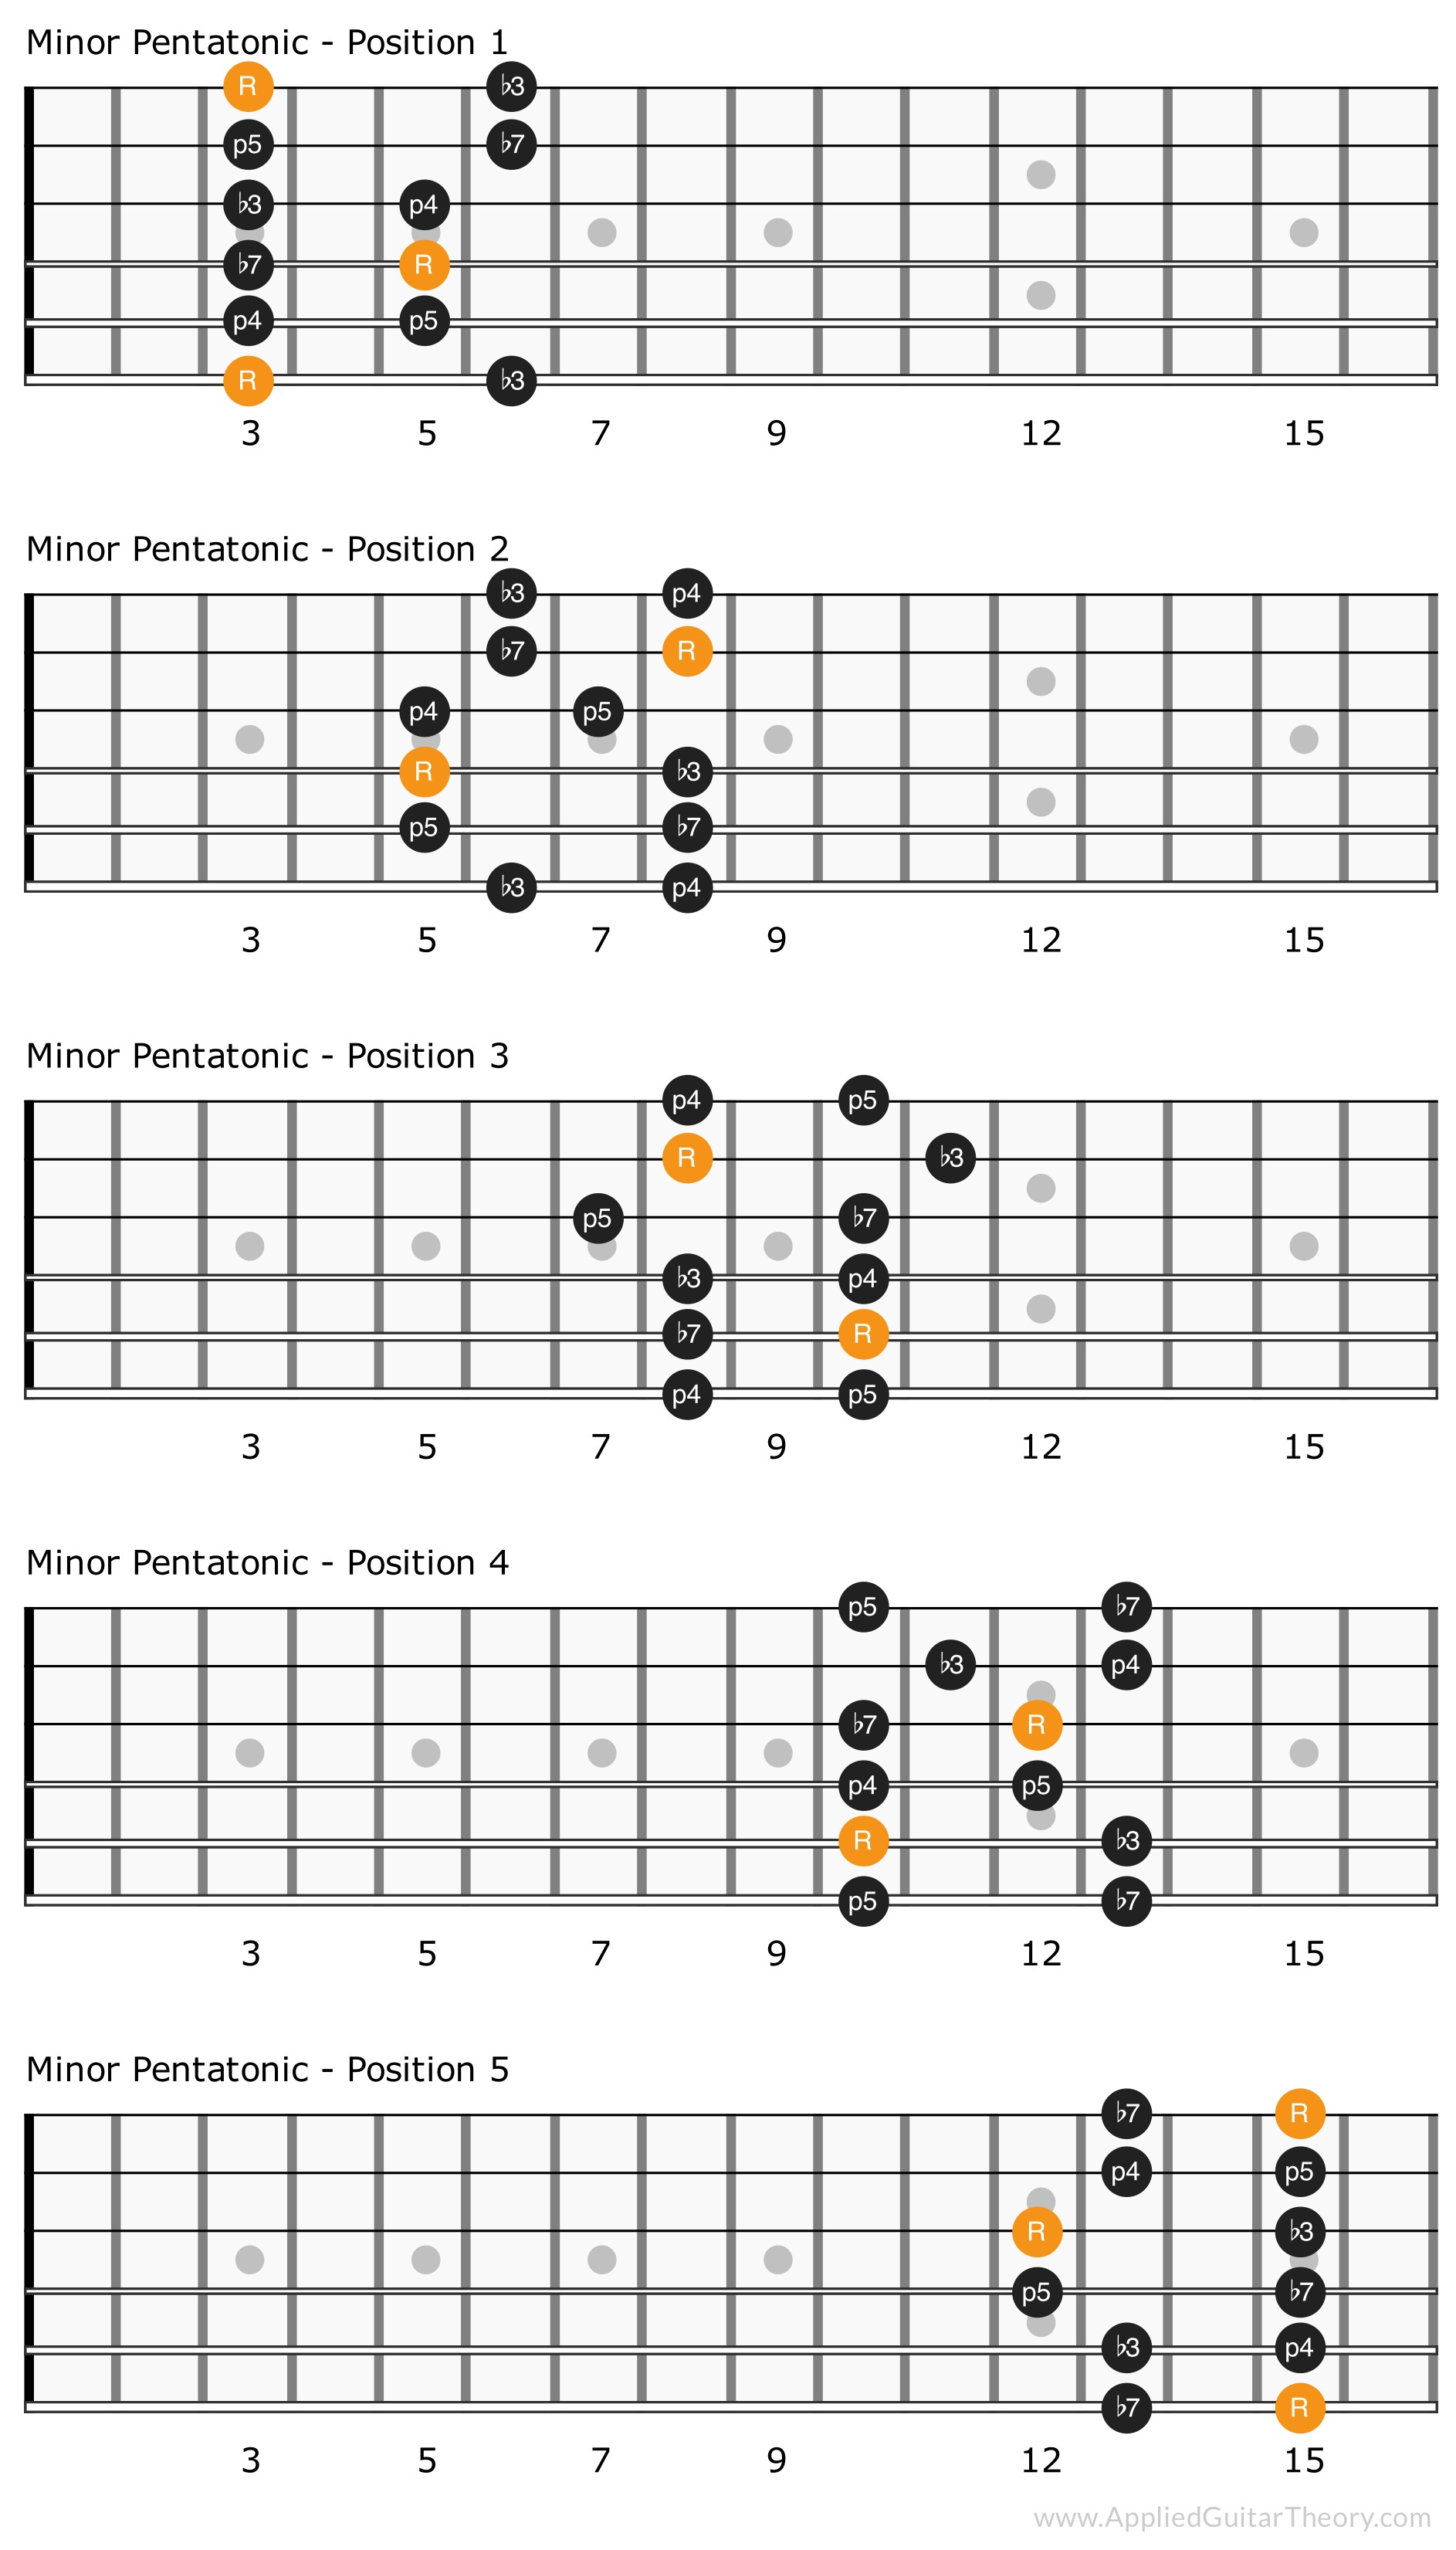 Five positions of the minor pentatonic scale